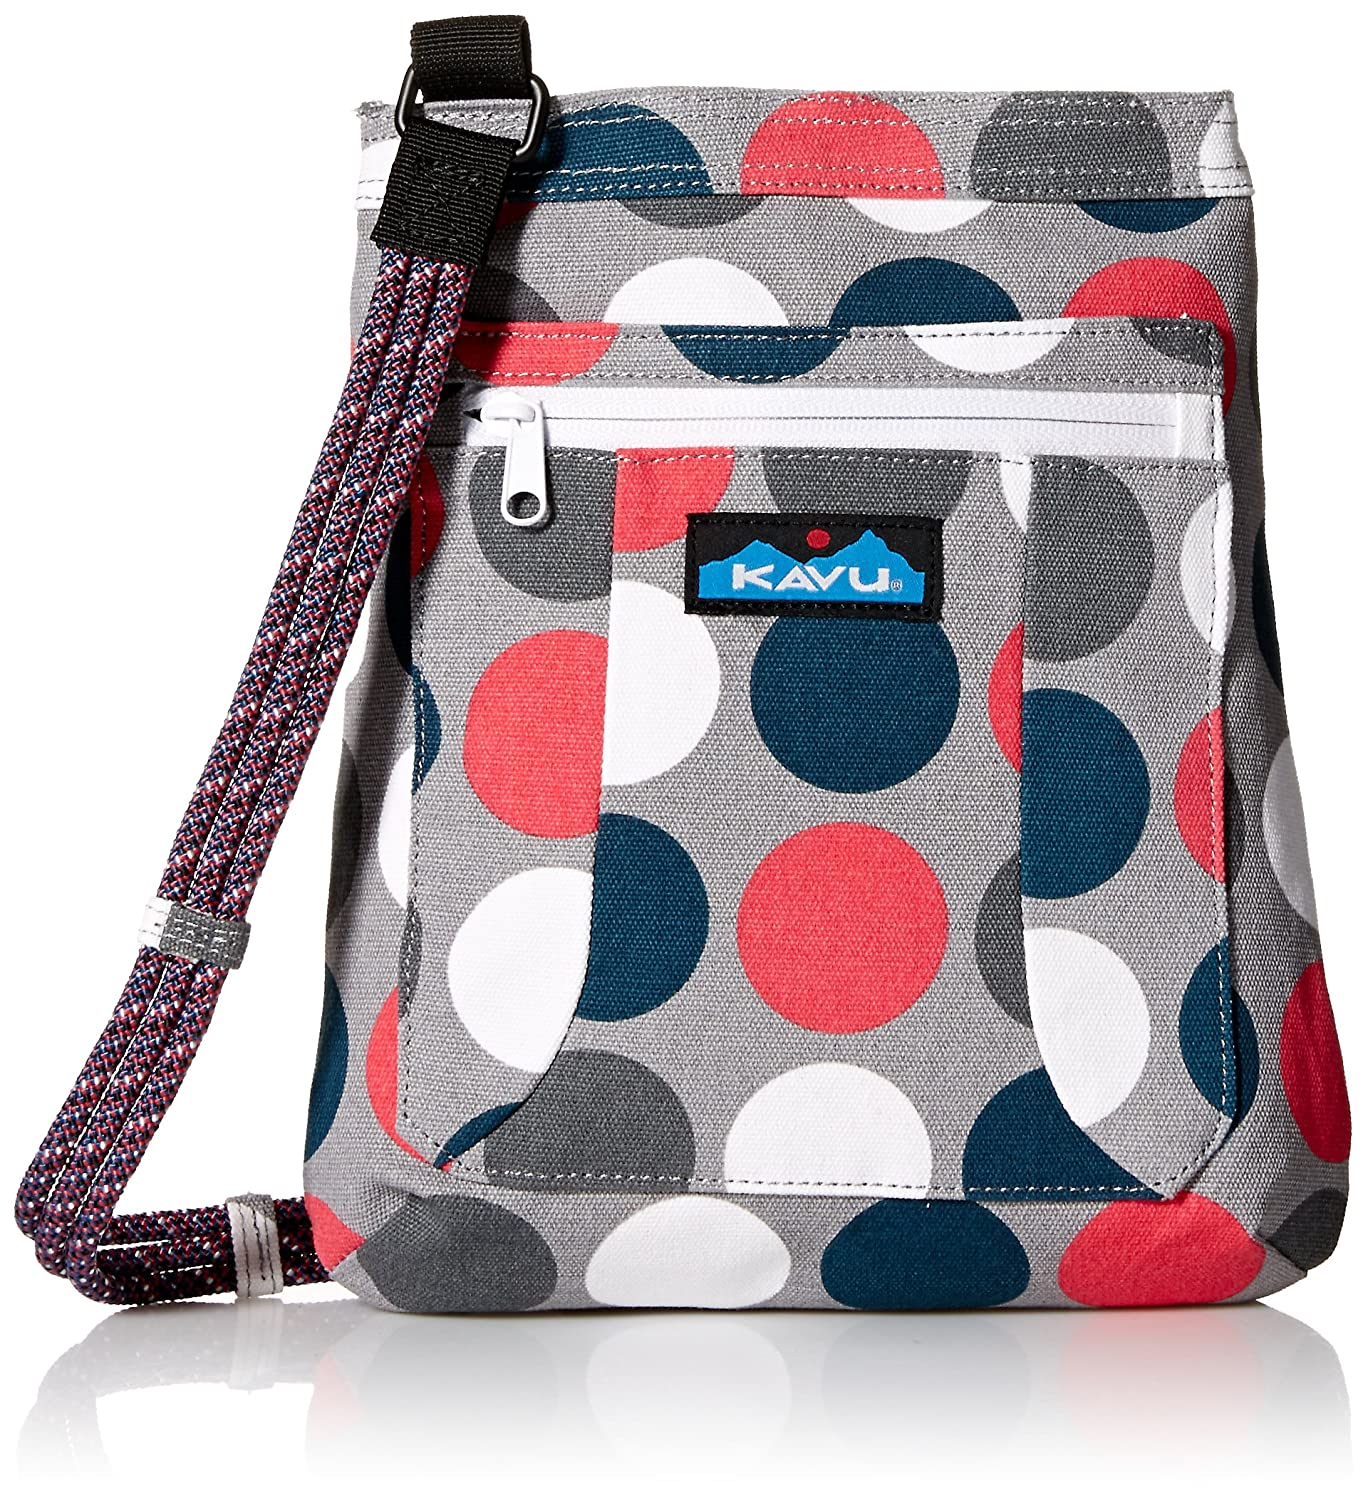 f1a2c67cc47 Amazon.com: KAVU Keepalong, Got Dots, One Size: Clothing